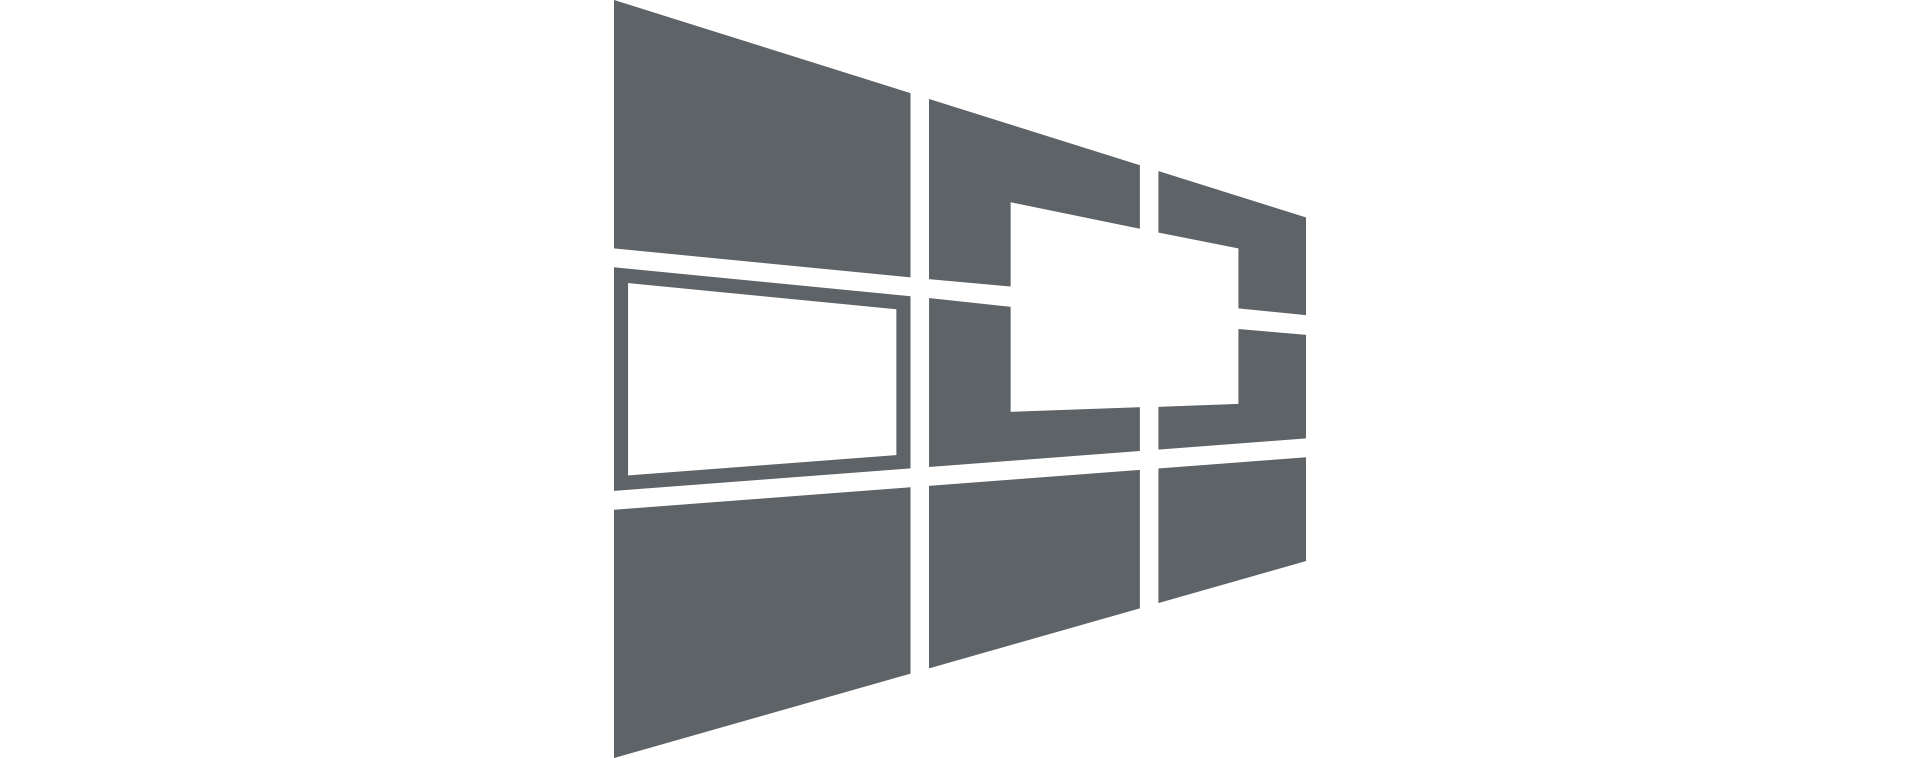 Remote Video Wall